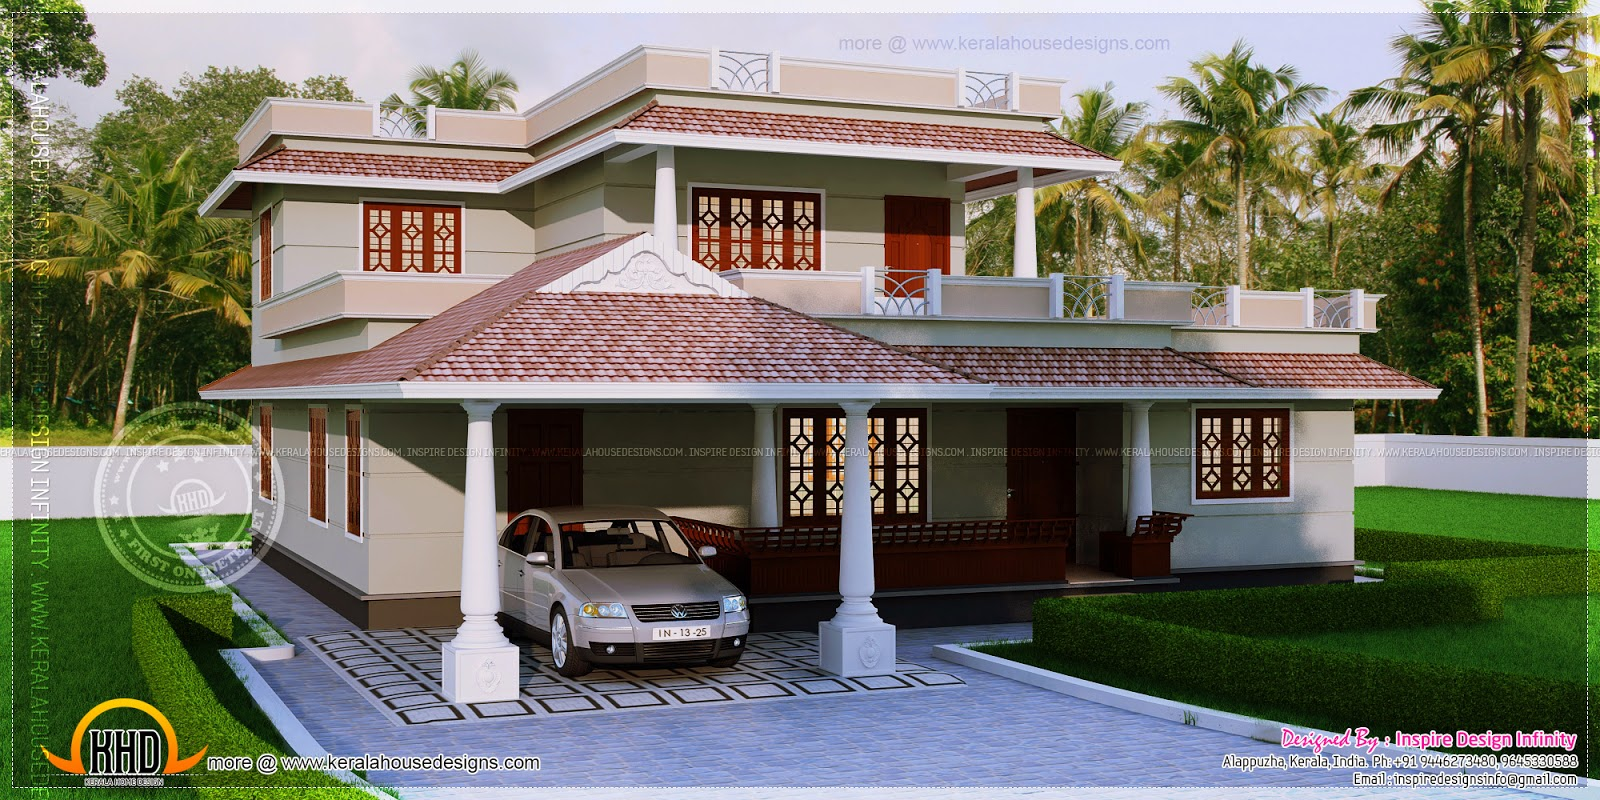 4 bedroom kerala style house in 300 square yards kerala for Kerala home style 3 bedroom